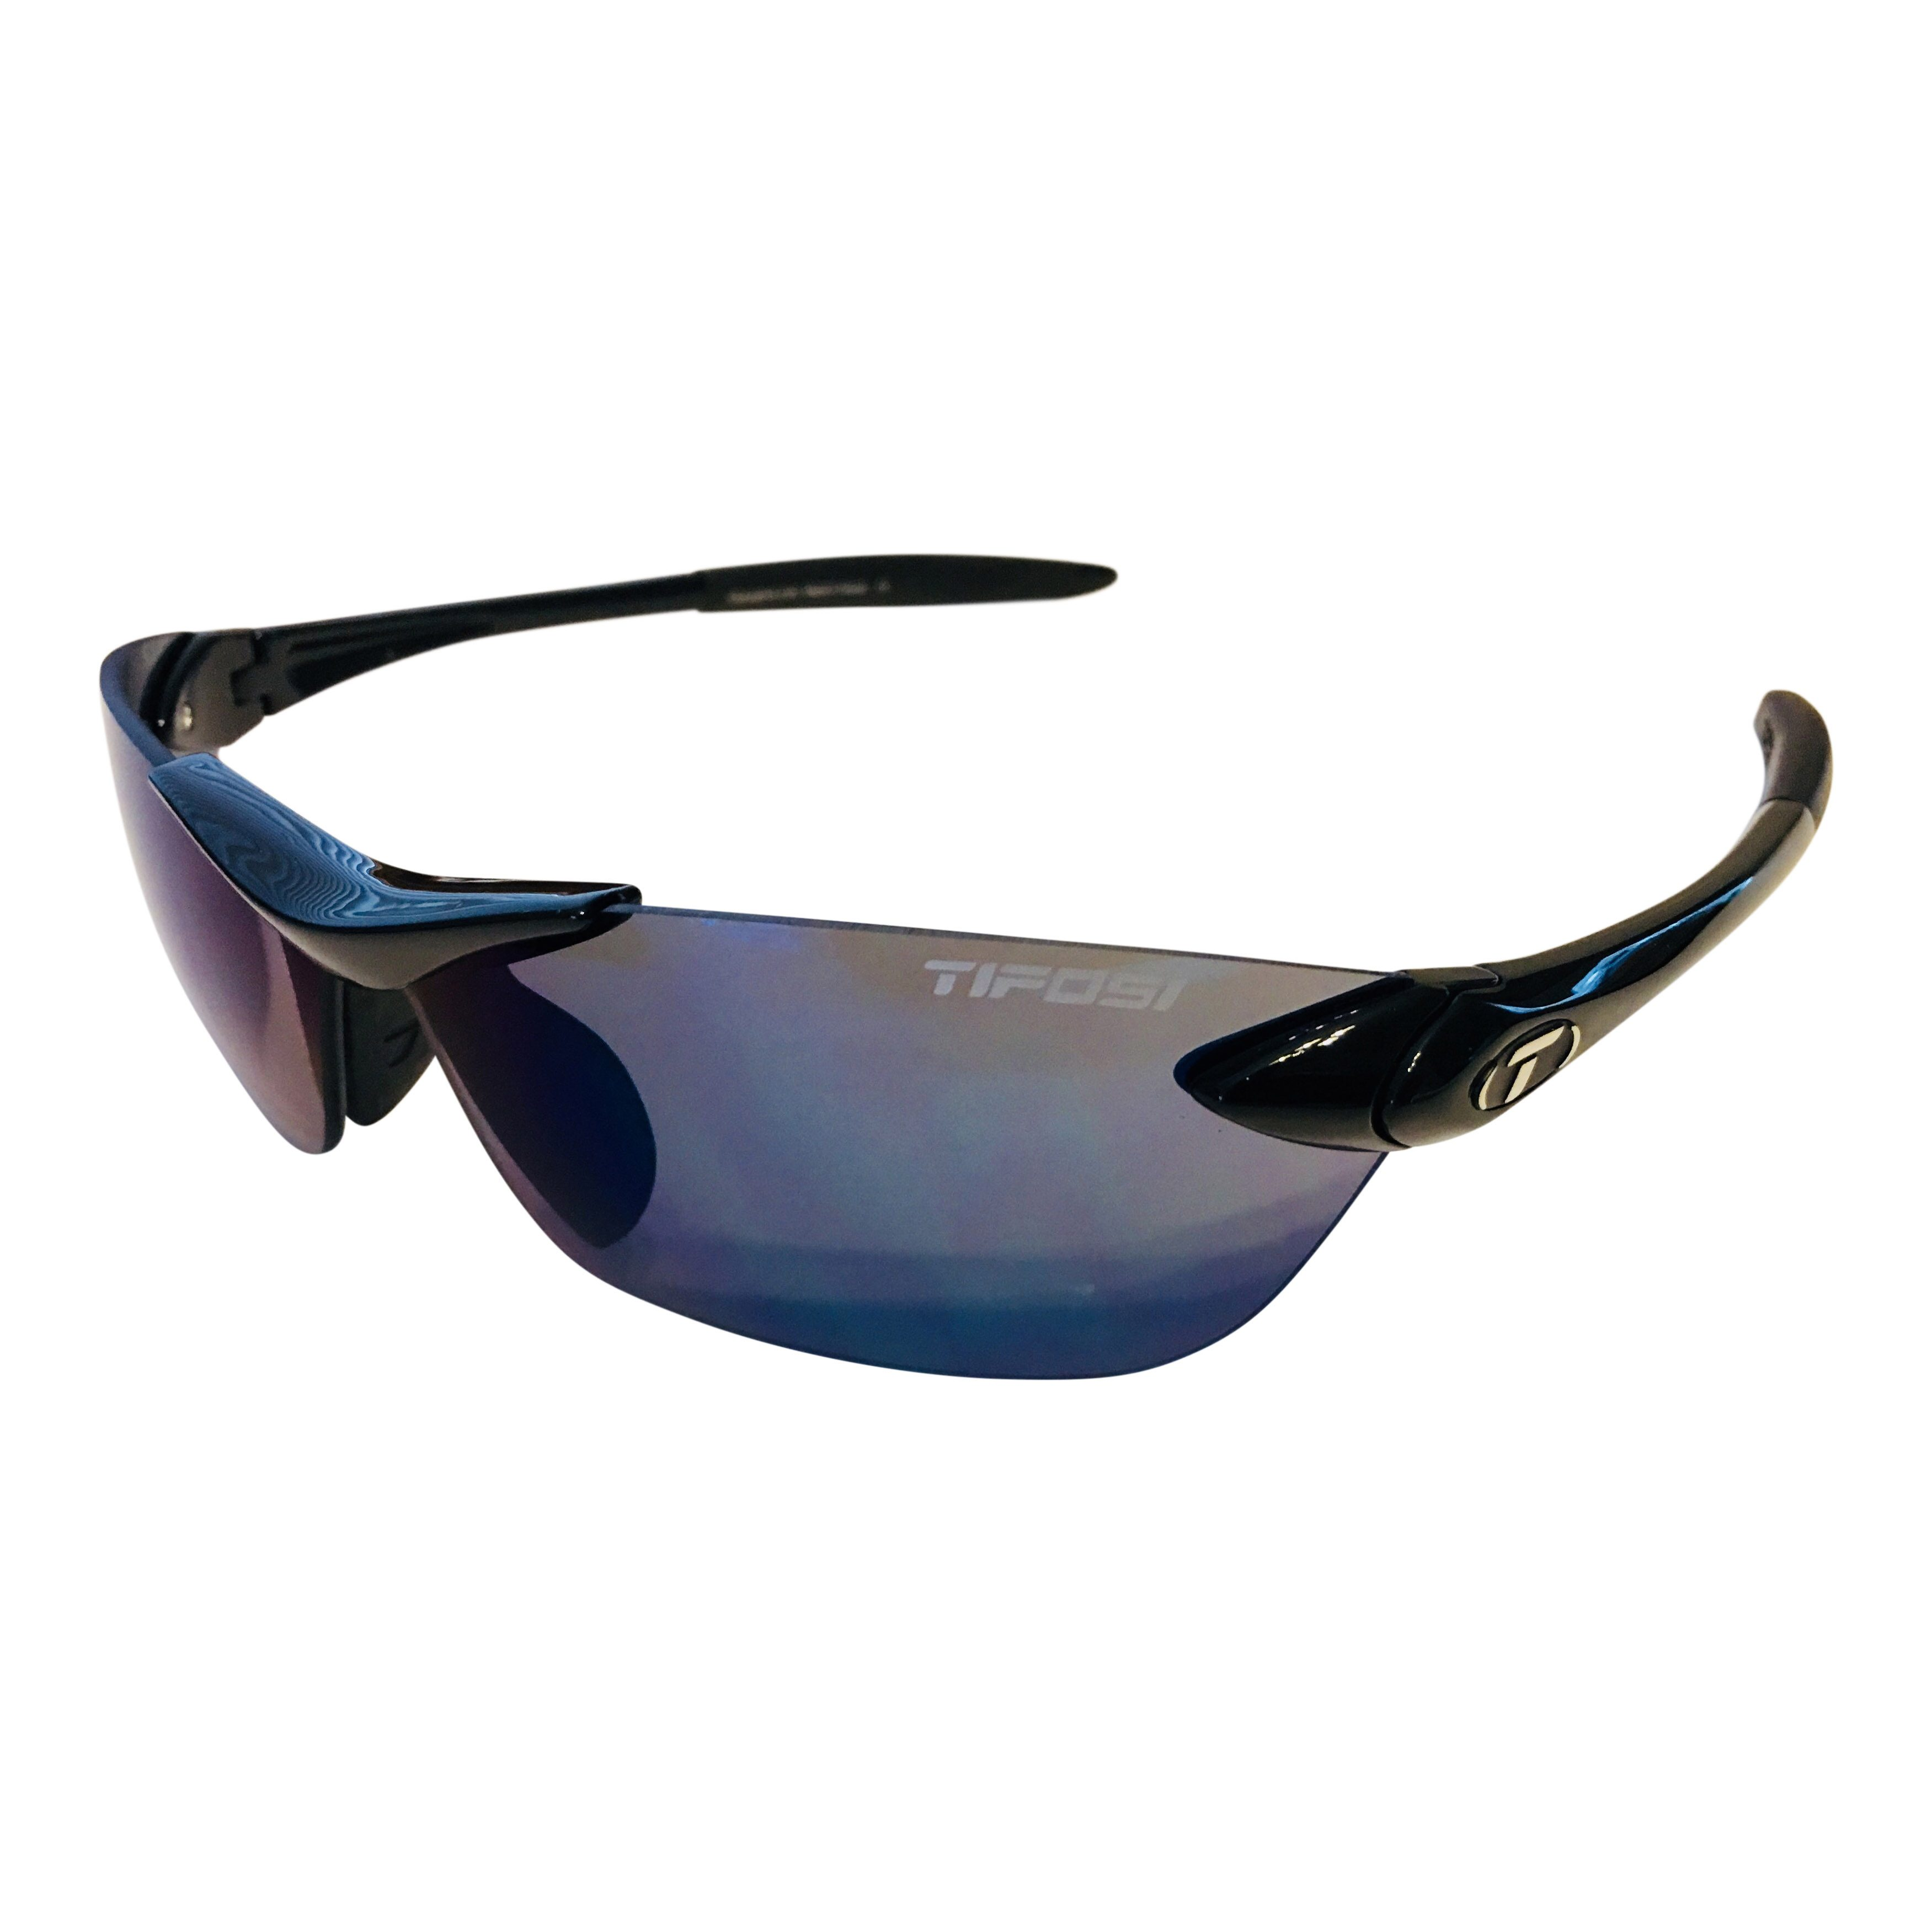 19957c423d1 Tifosi Optics Seek Sunglasses – Gloss Black Frame – Smoke Blue Lens